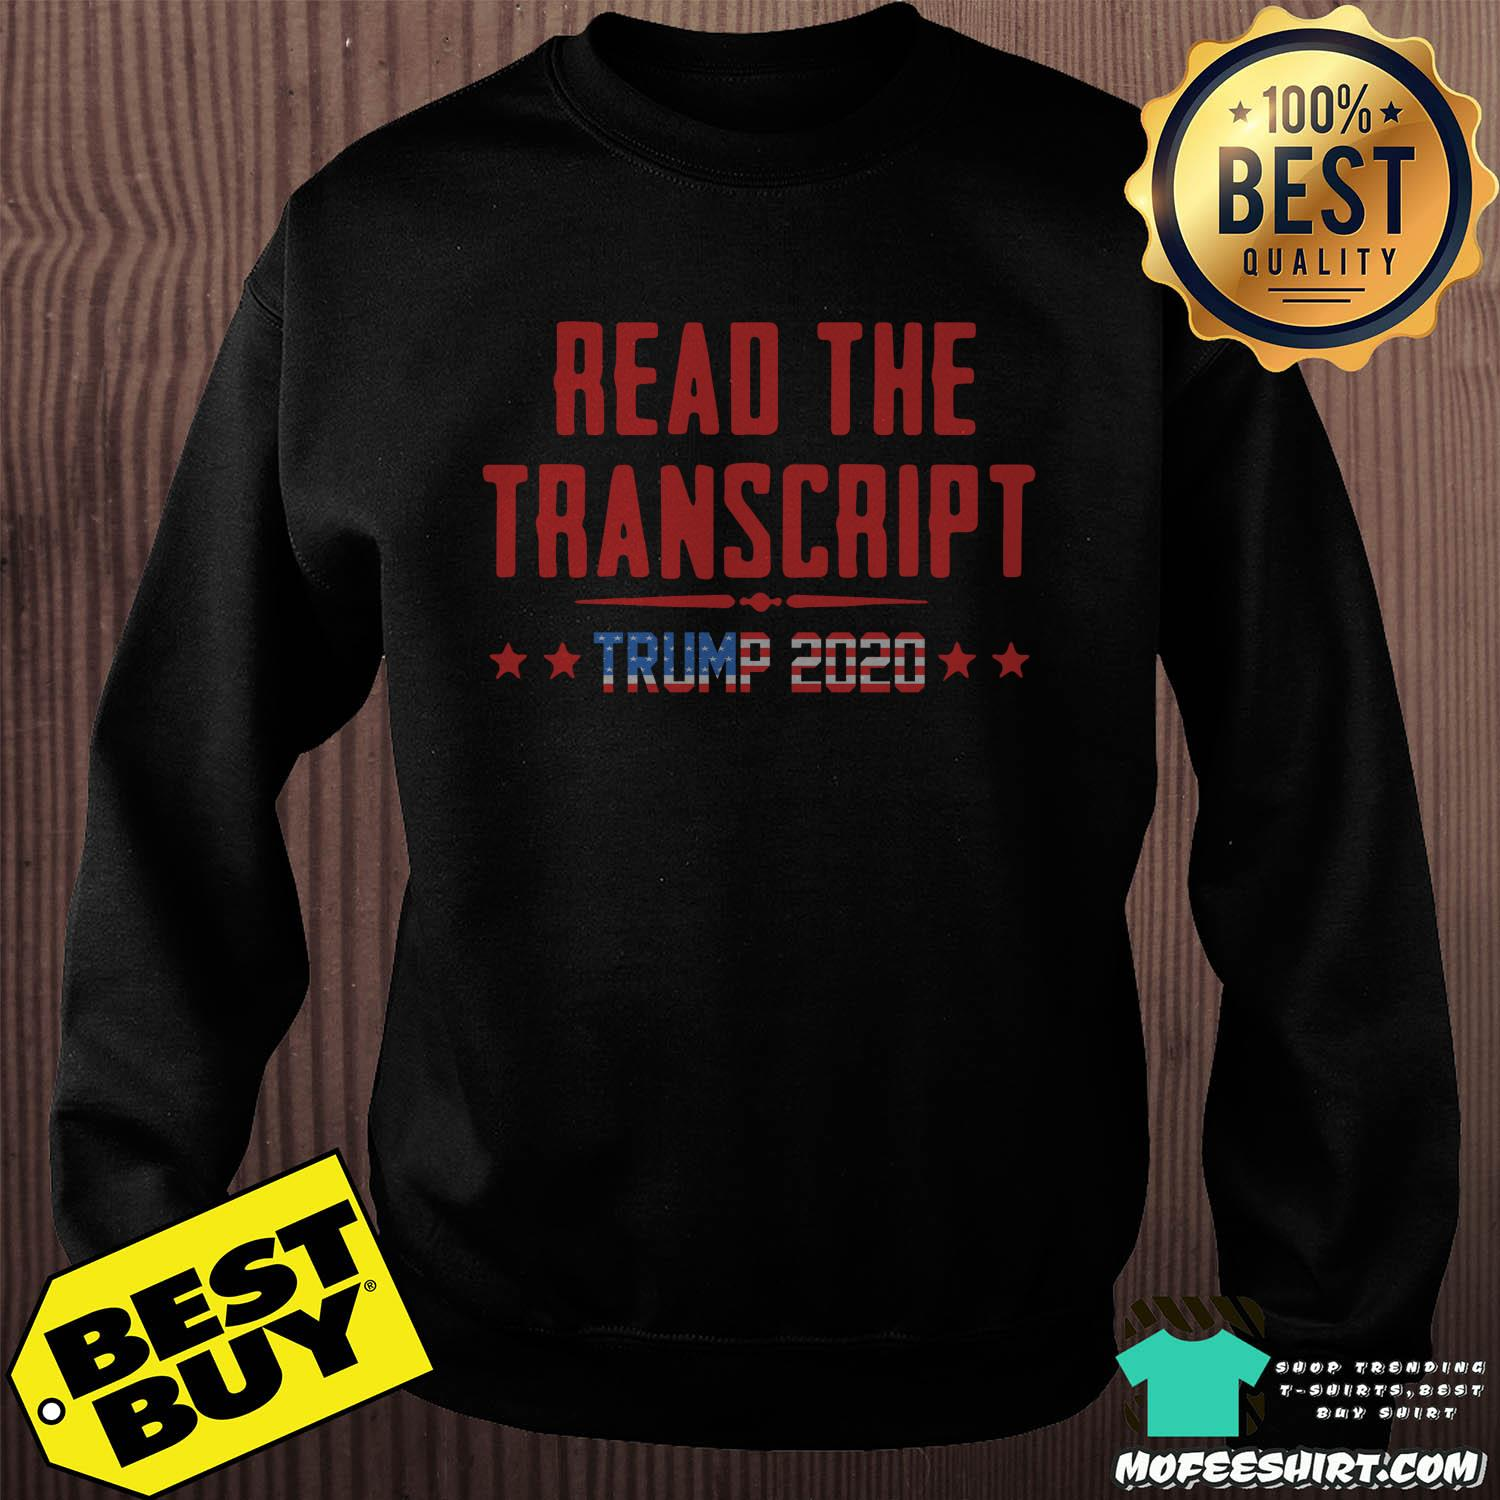 read the transcript trump impeachment day sweatshirt sweater - Read The Transcript Trump Impeachment Day Shirt Sweater